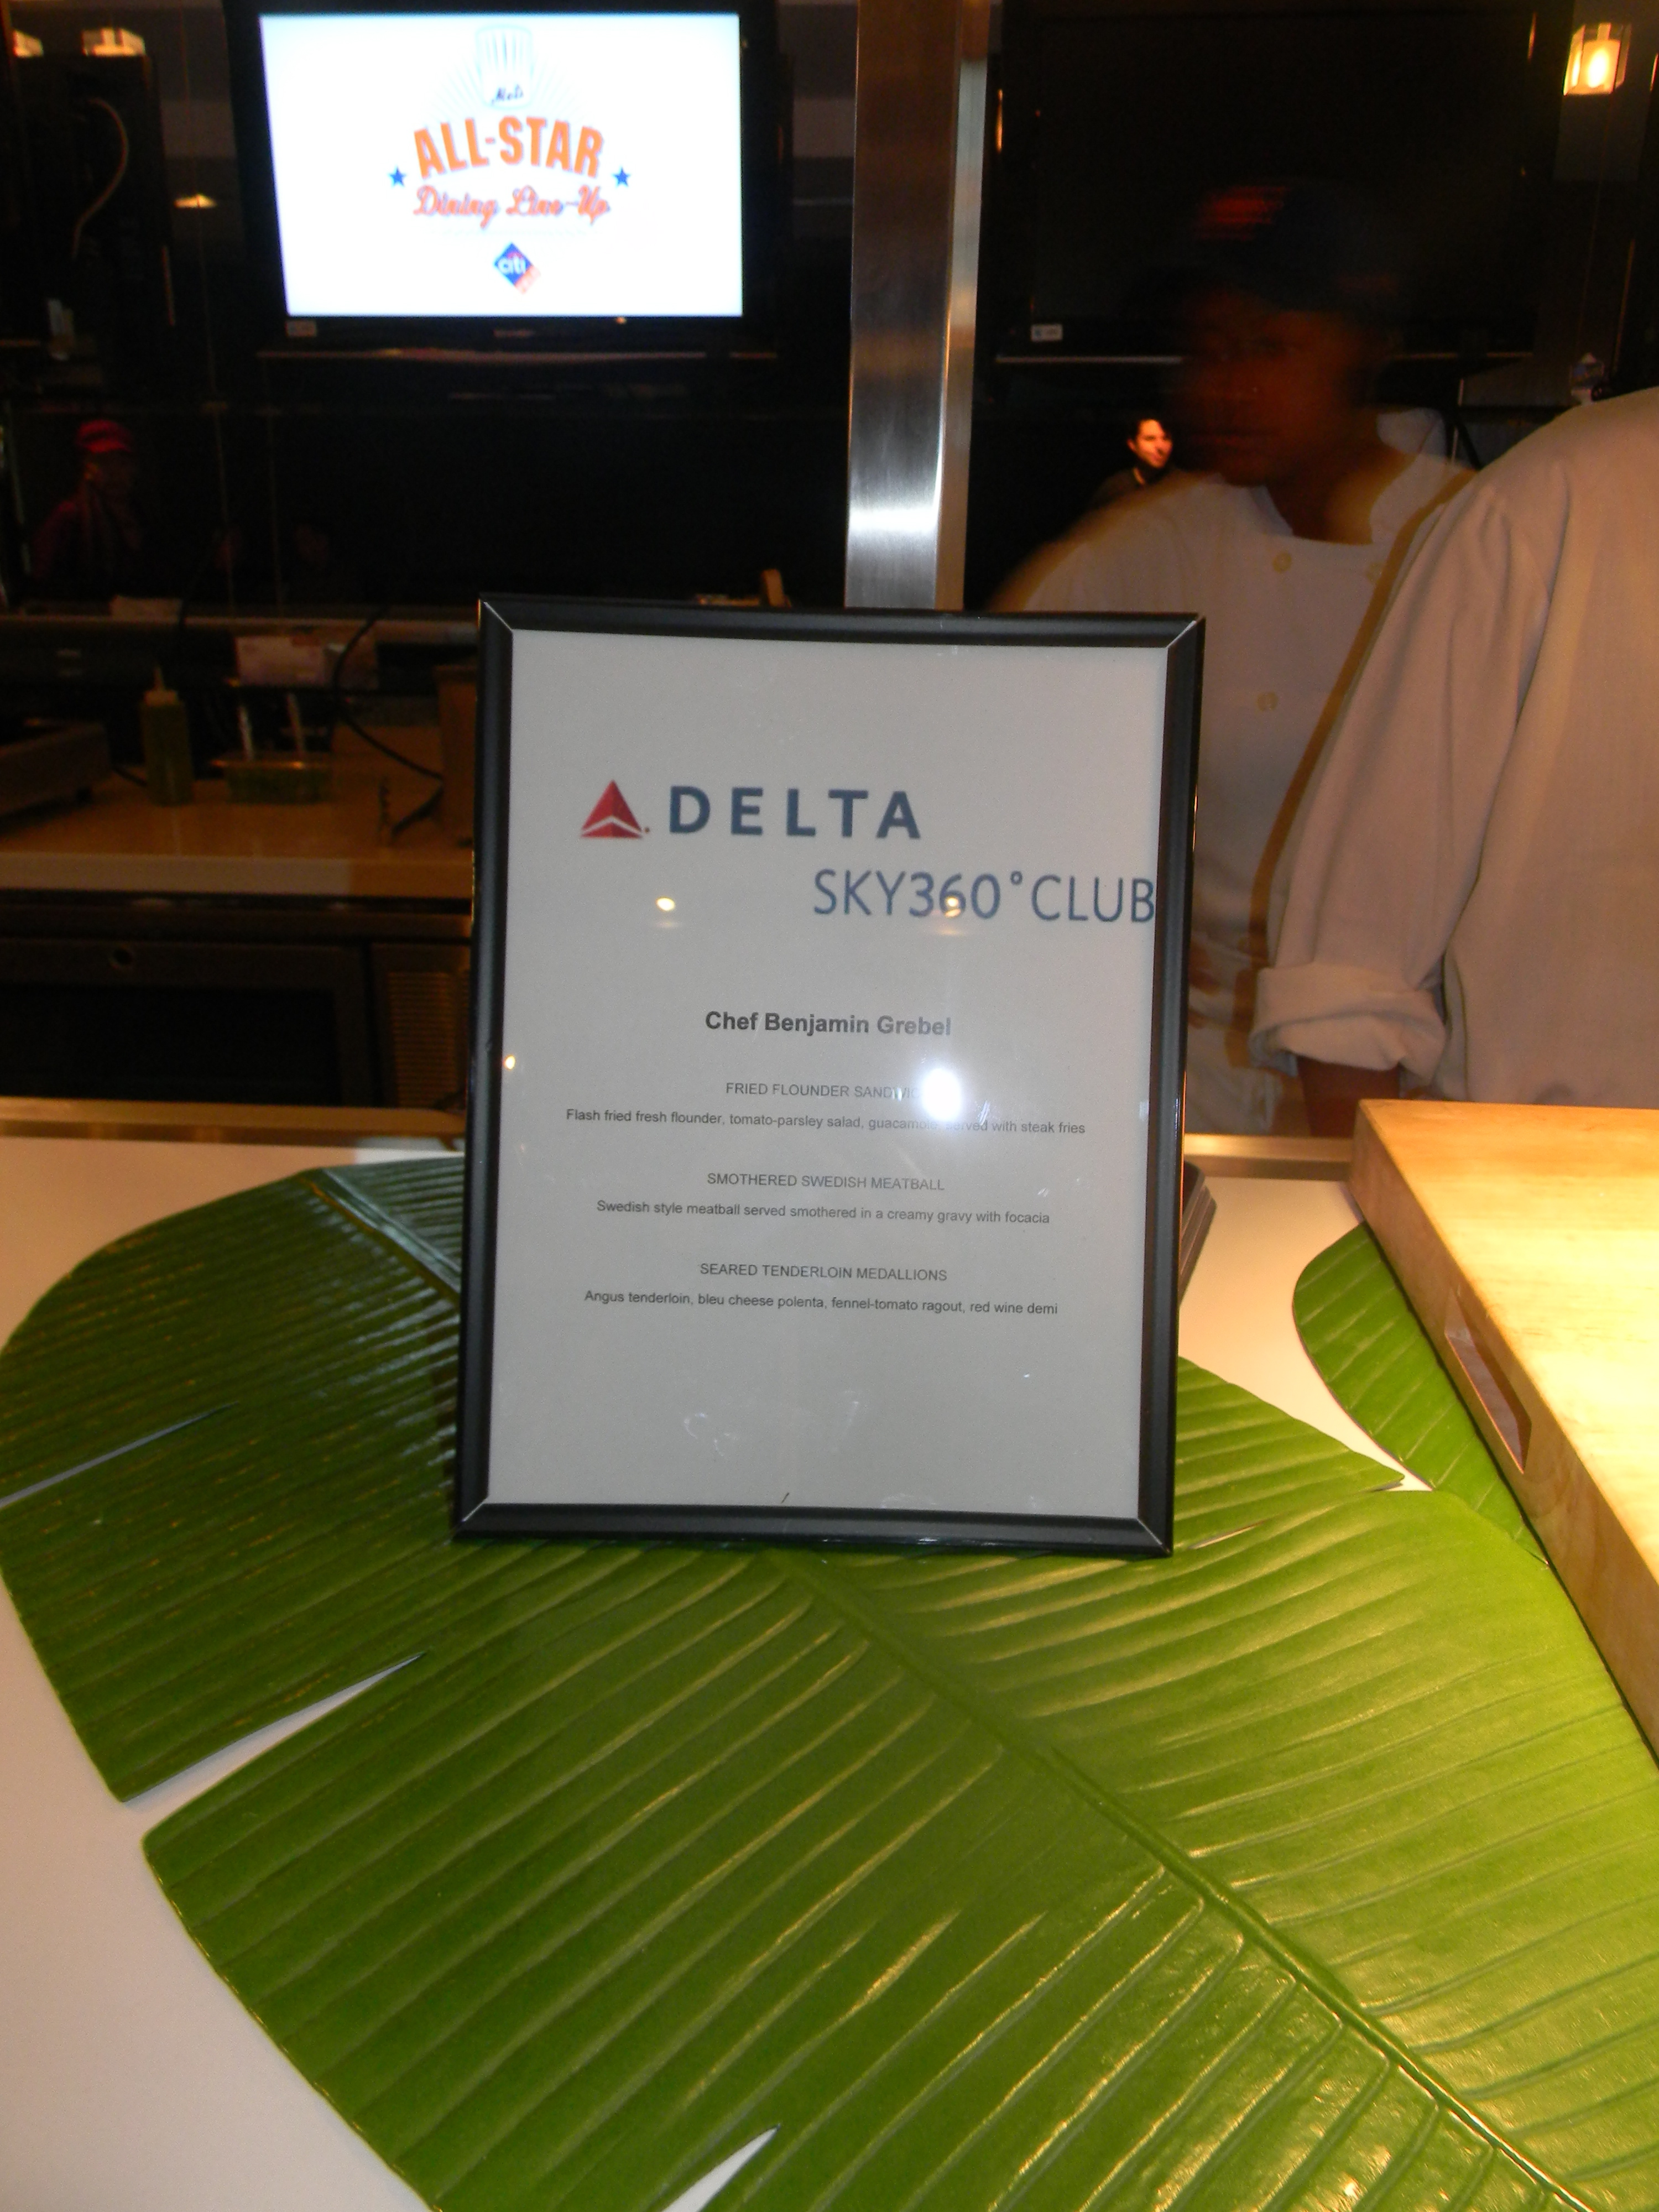 Delta Sky360 Club offerings